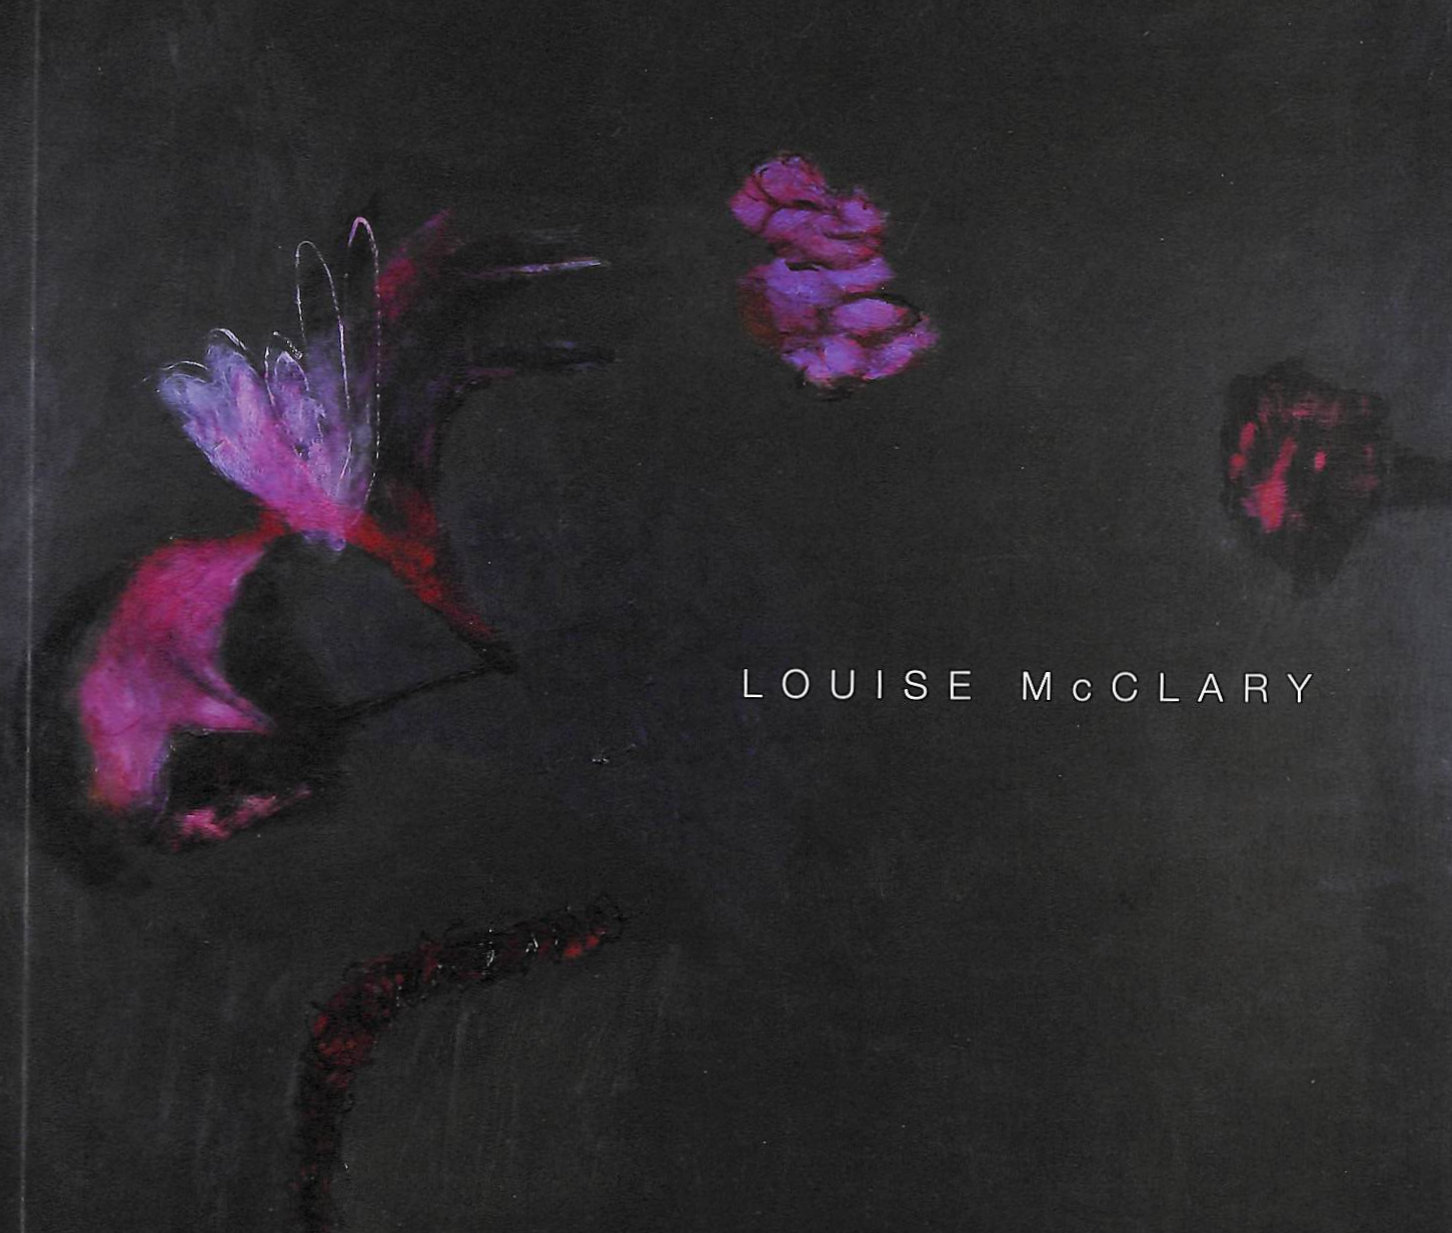 Image for Louise Mcclary